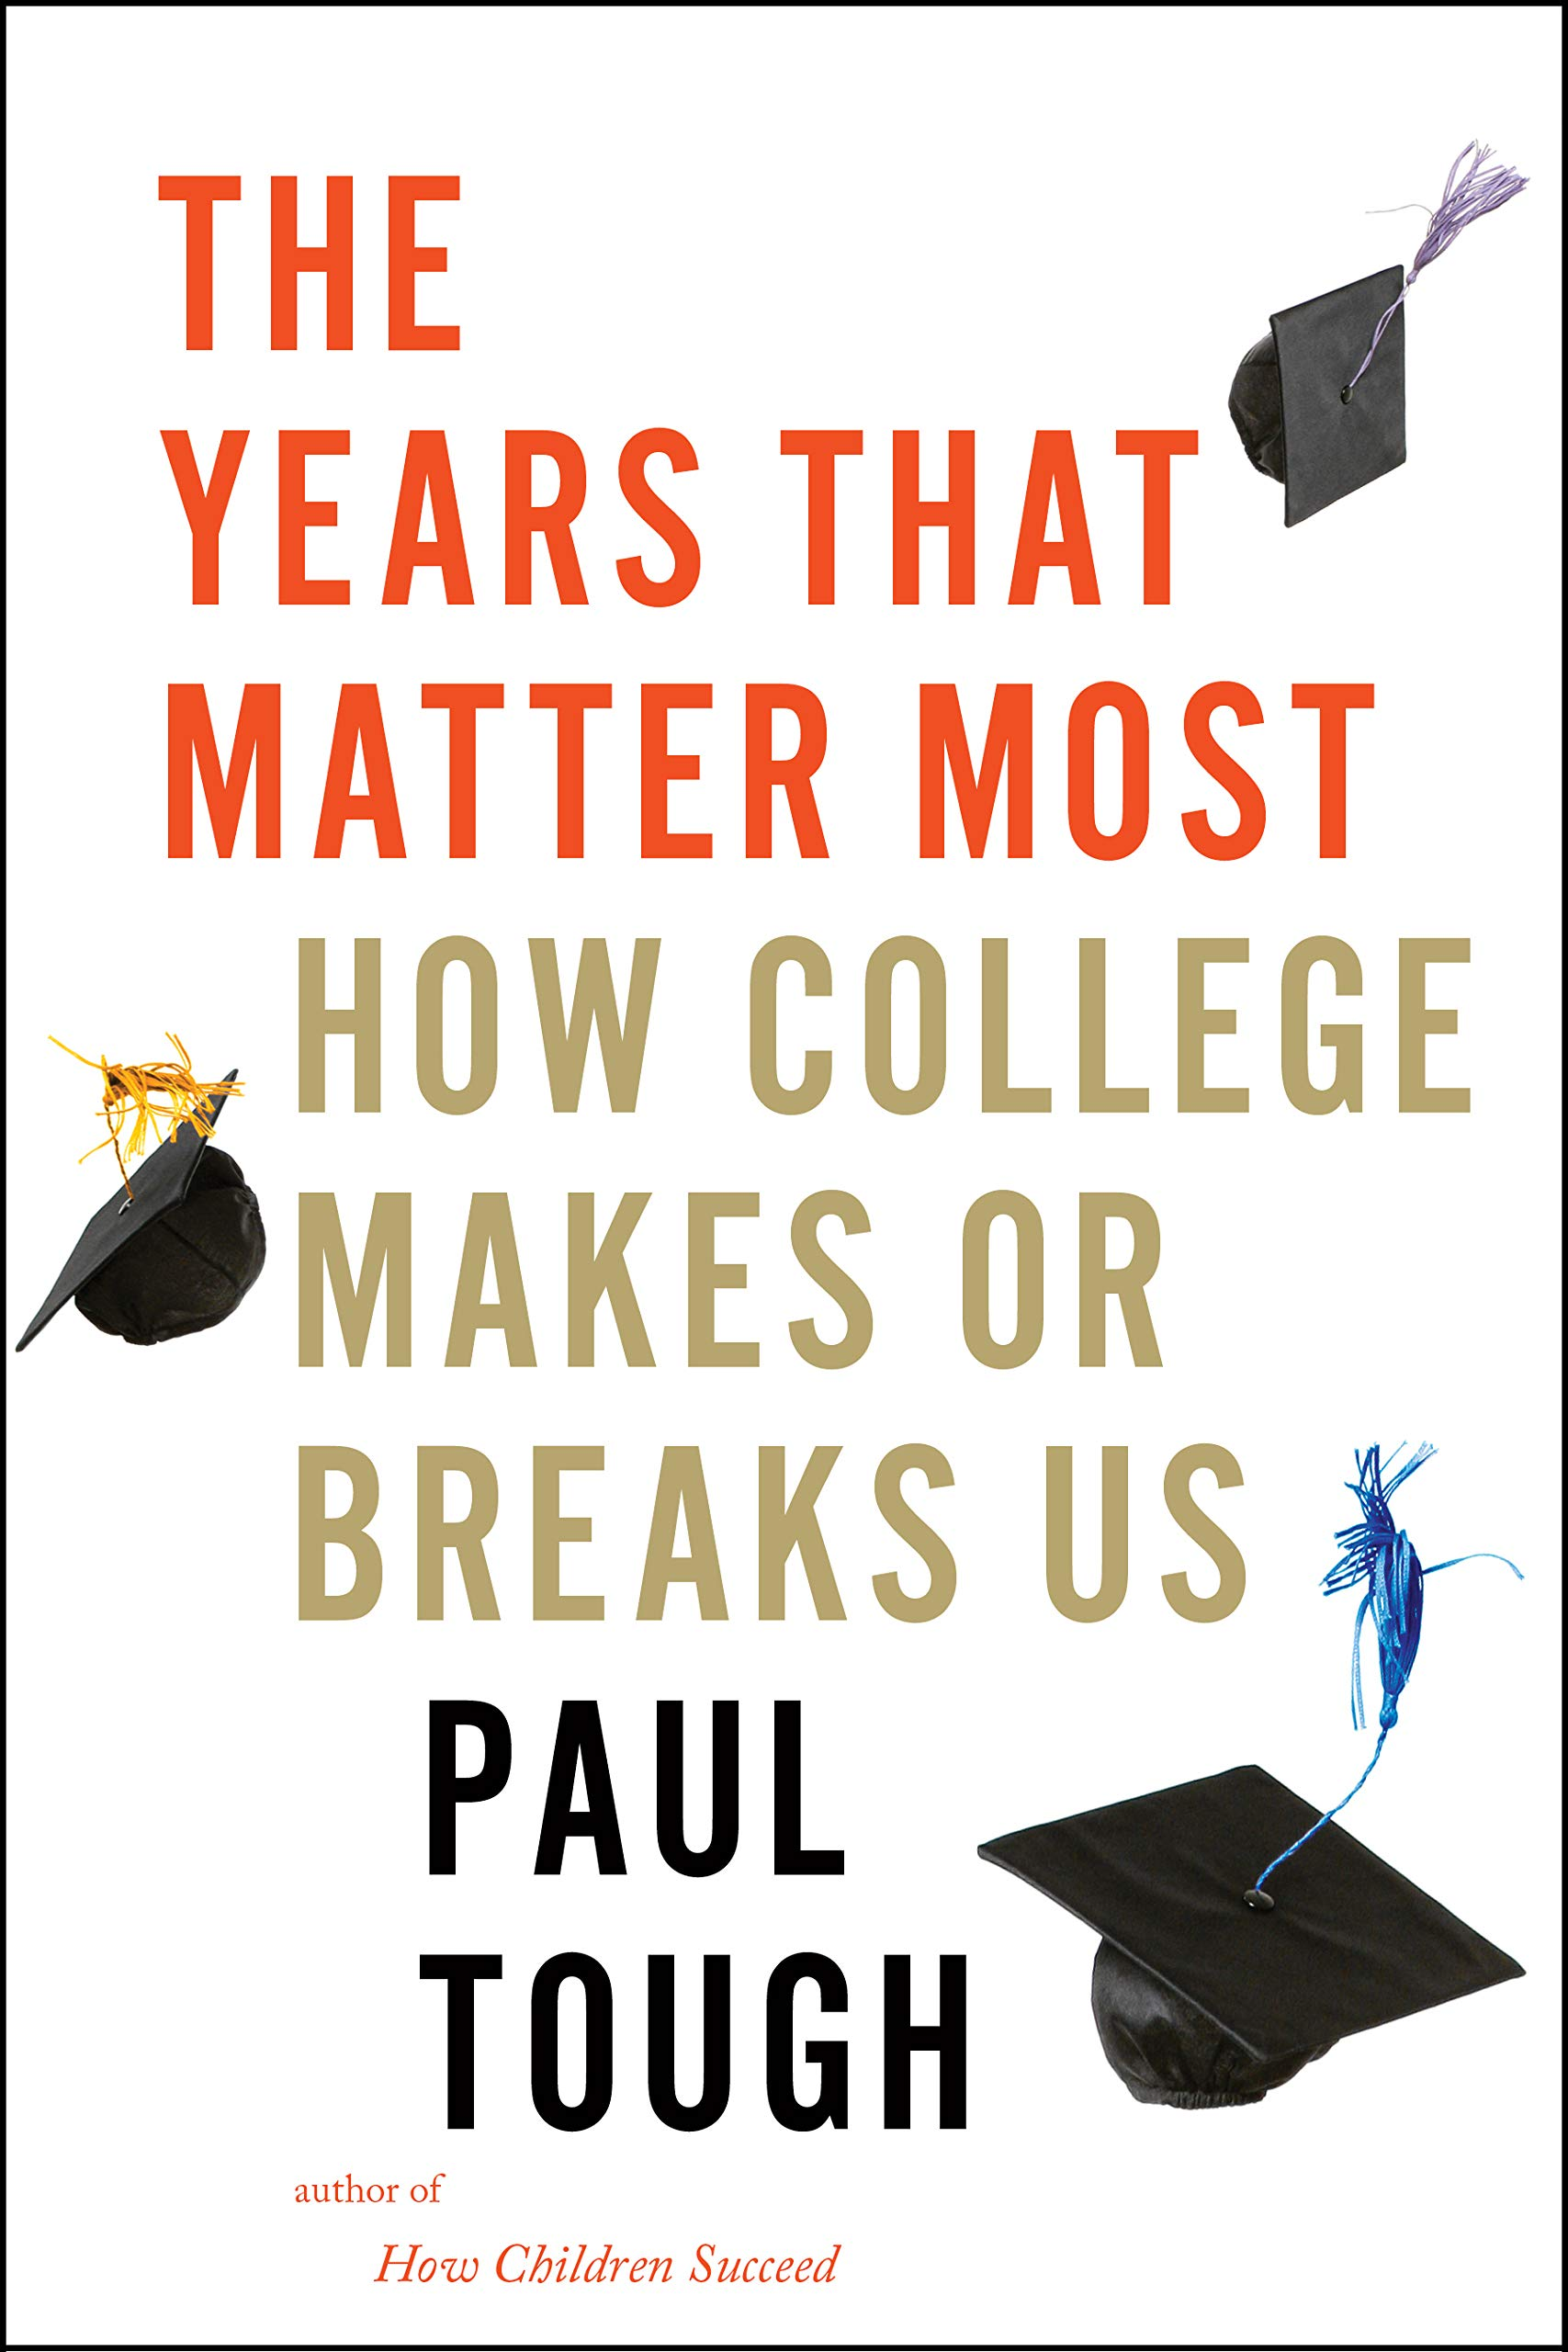 The Years That Matter Most: How College Makes or Breaks Us by Houghton Mifflin Harcourt